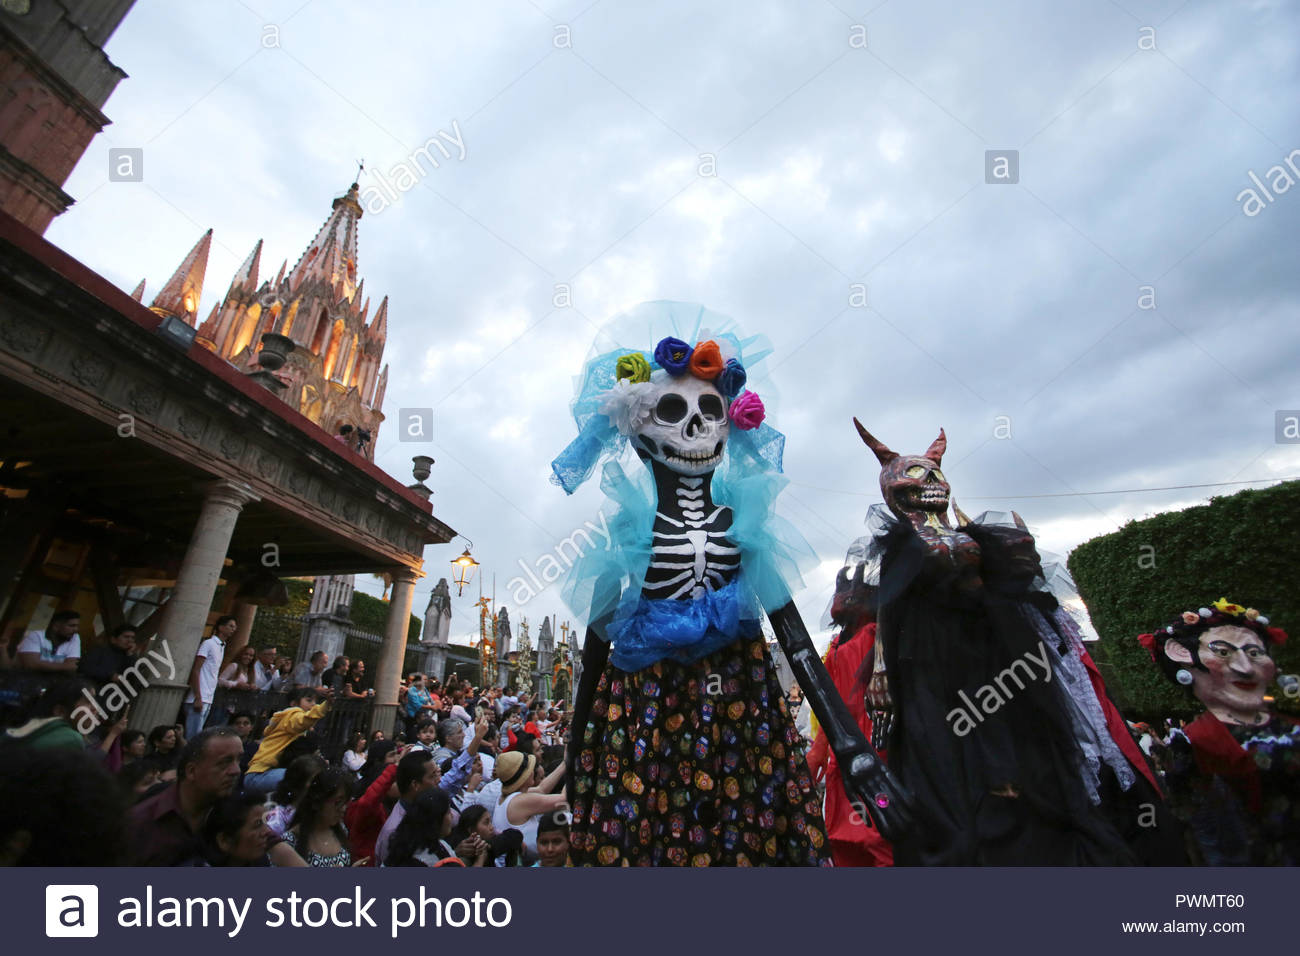 Mojiigangas (giant puppets) dancing at an annual fiesta in San Miguel de Allende, Mexico. - Stock Image